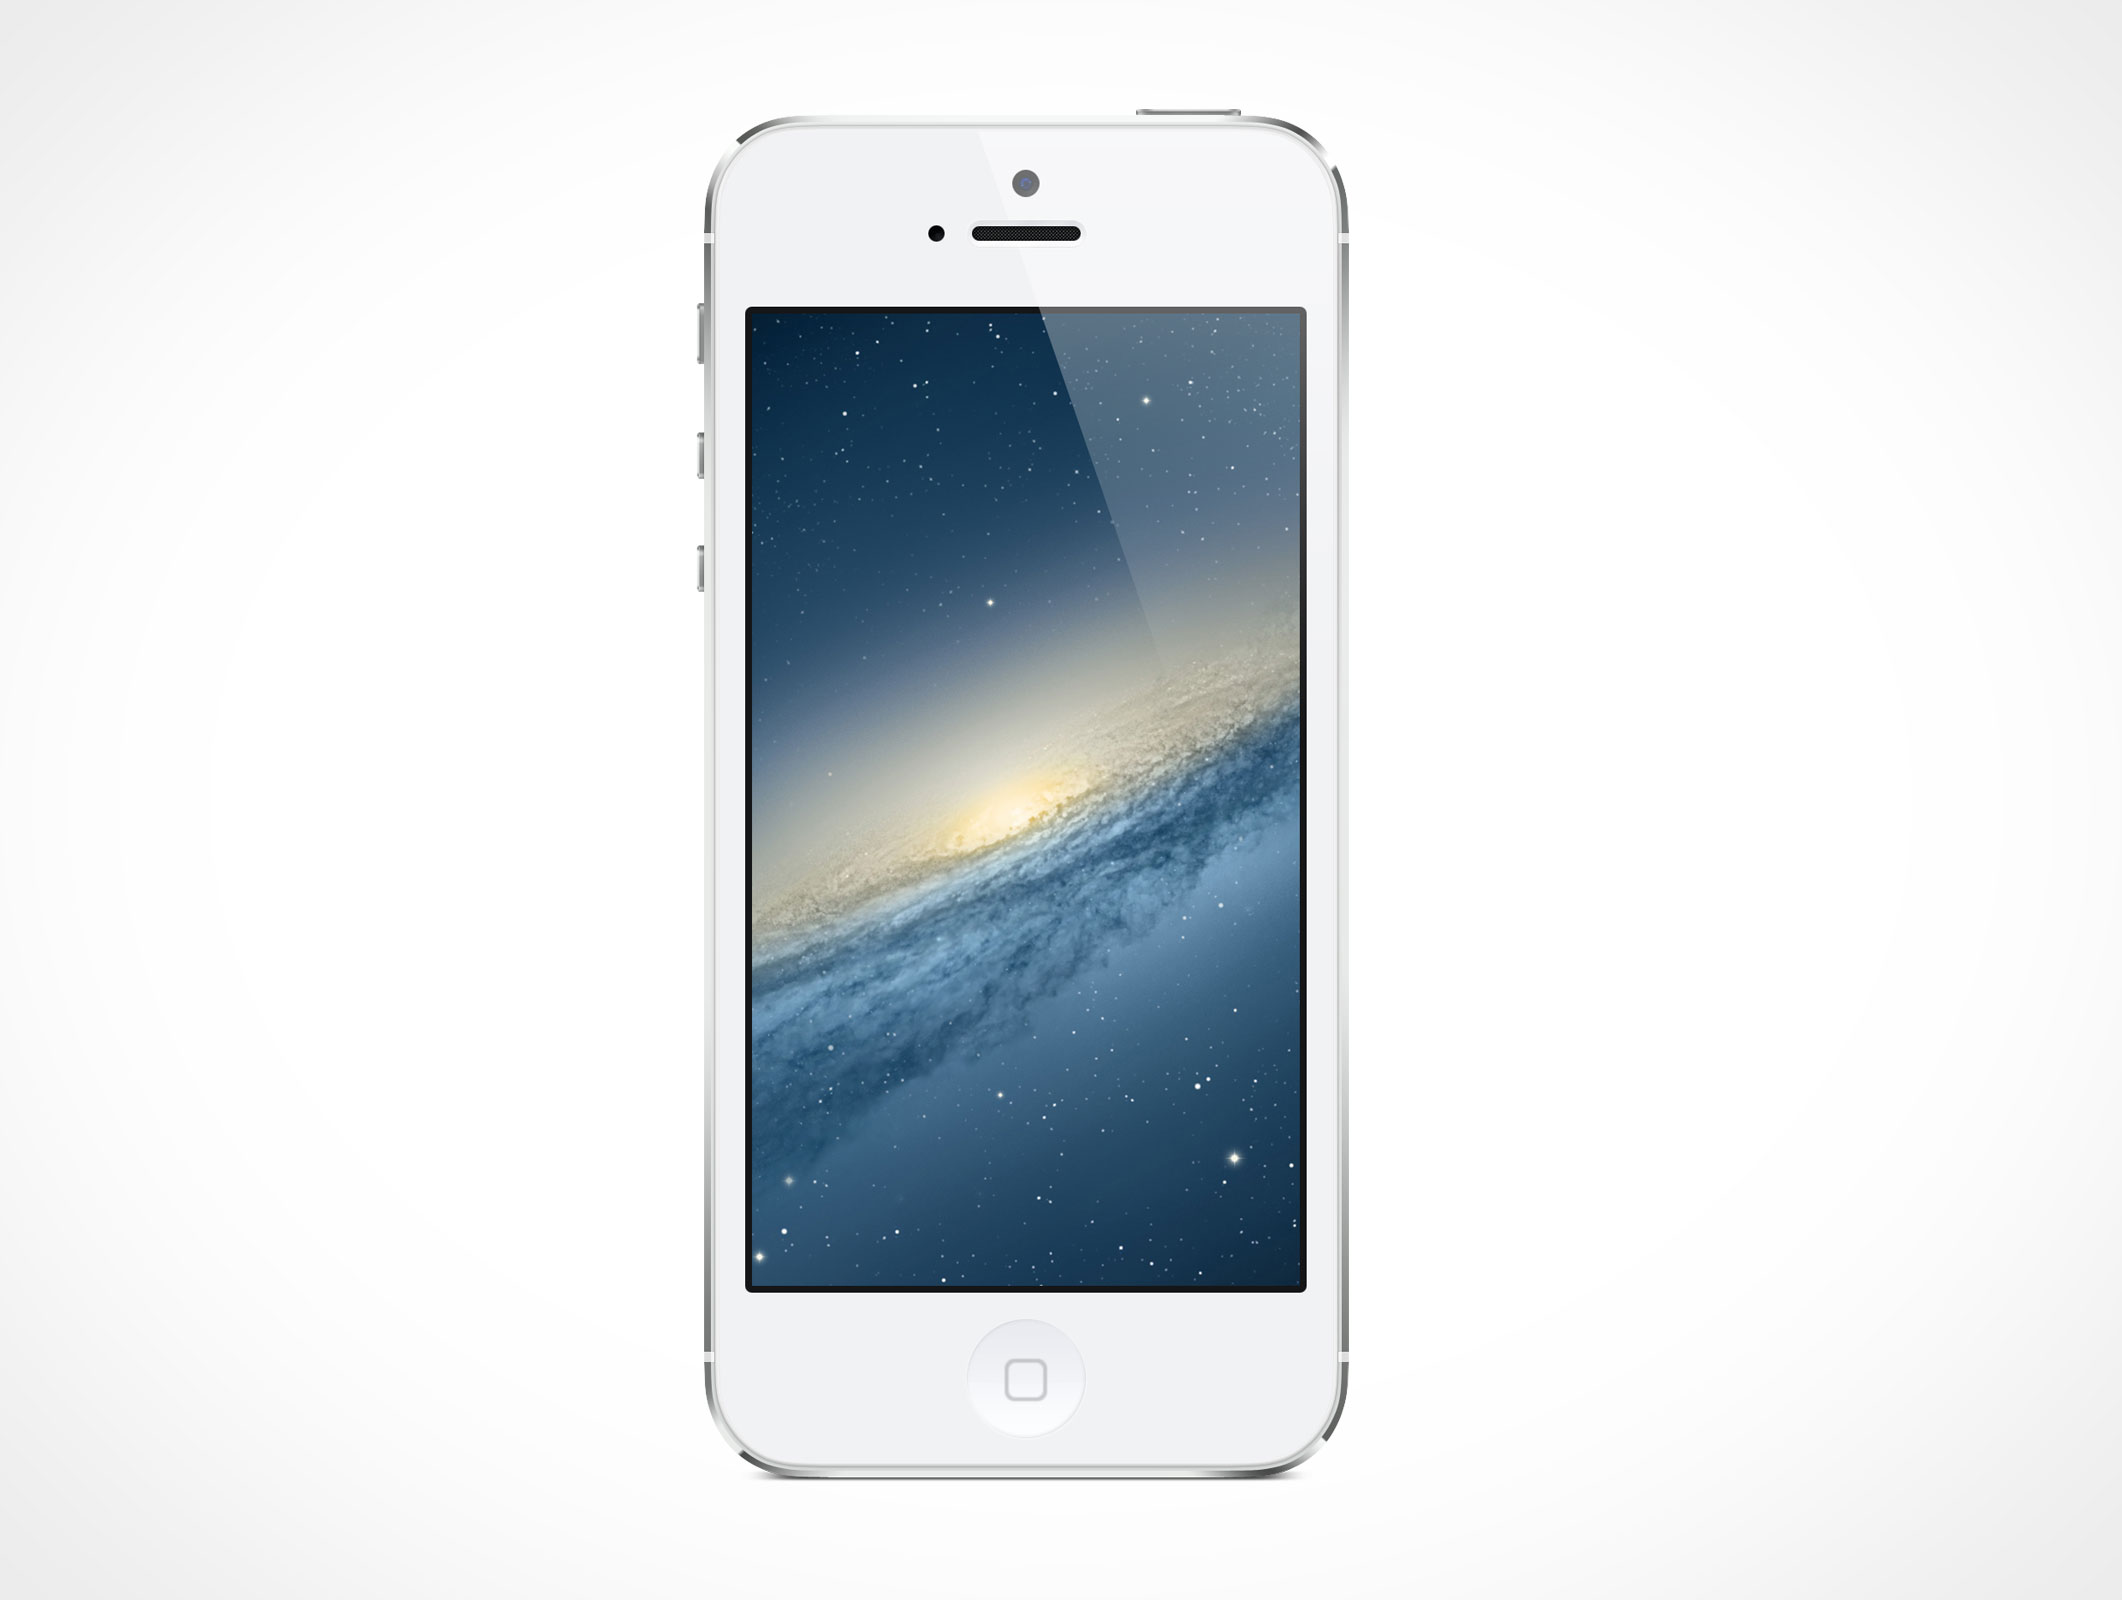 9 White Iphone 5 Psd